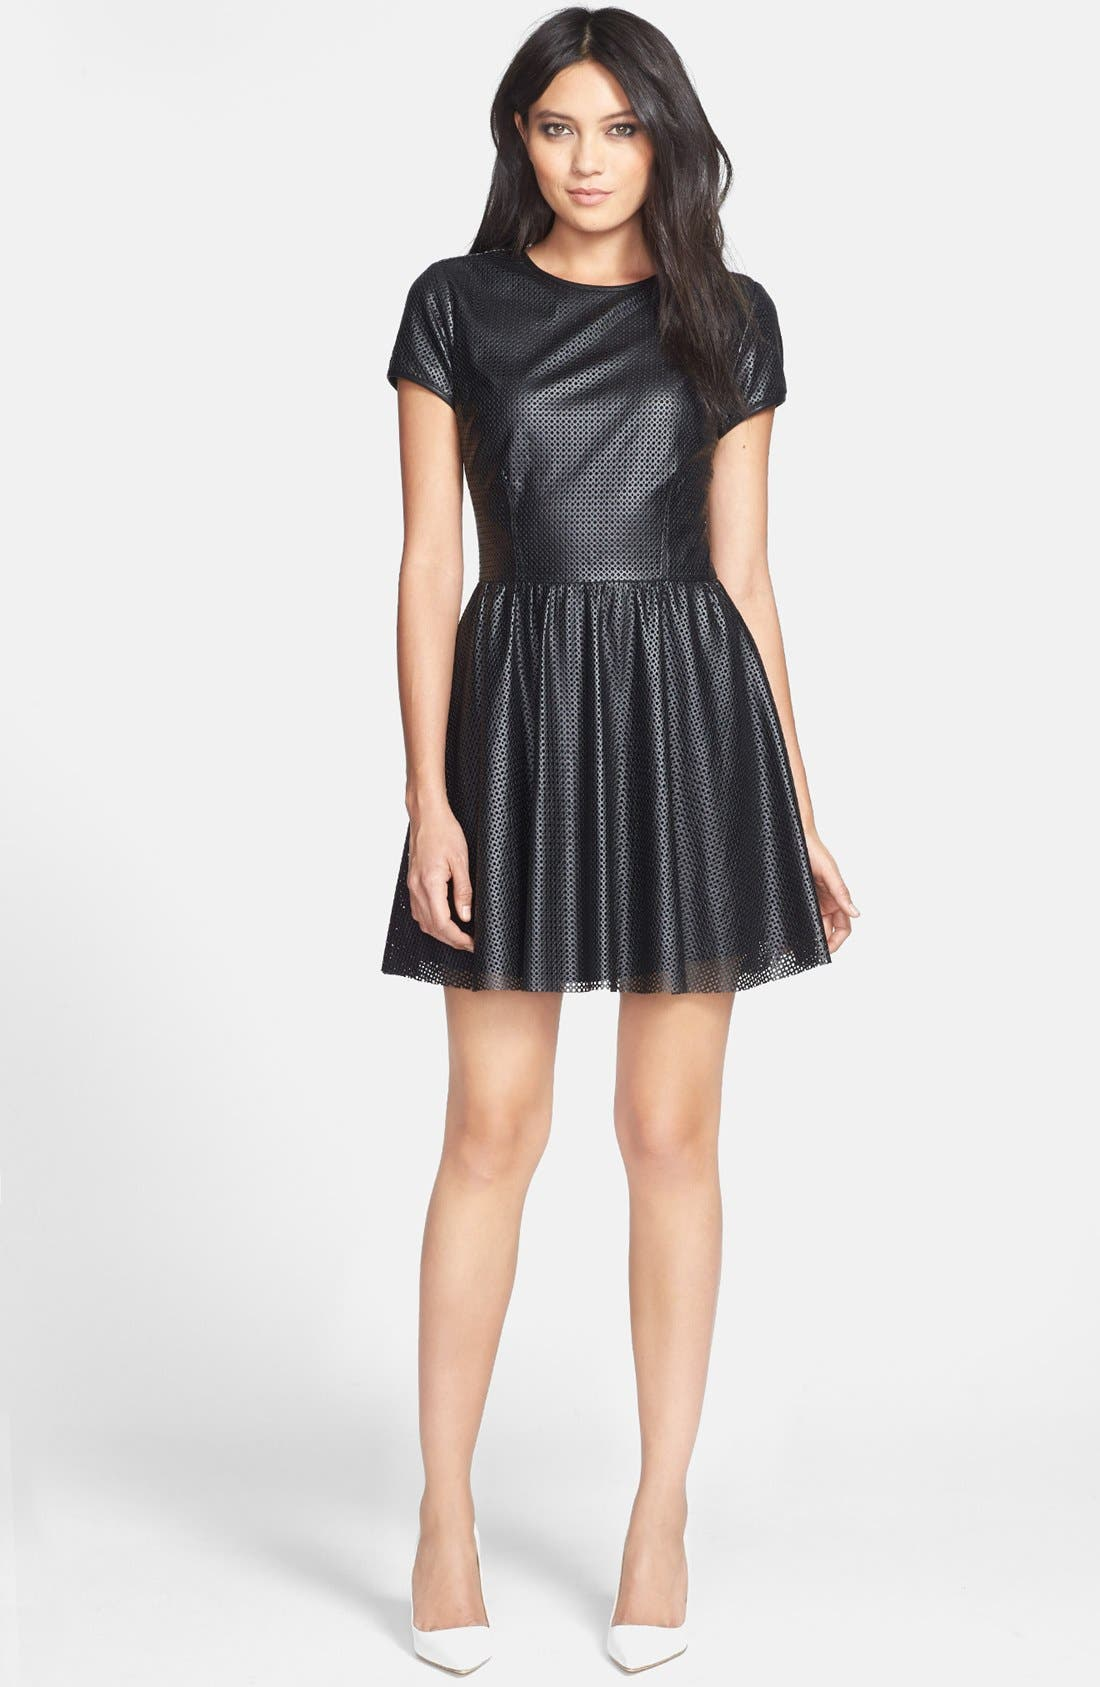 Main Image - Lucca Couture Perforated Faux Leather Skater Dress